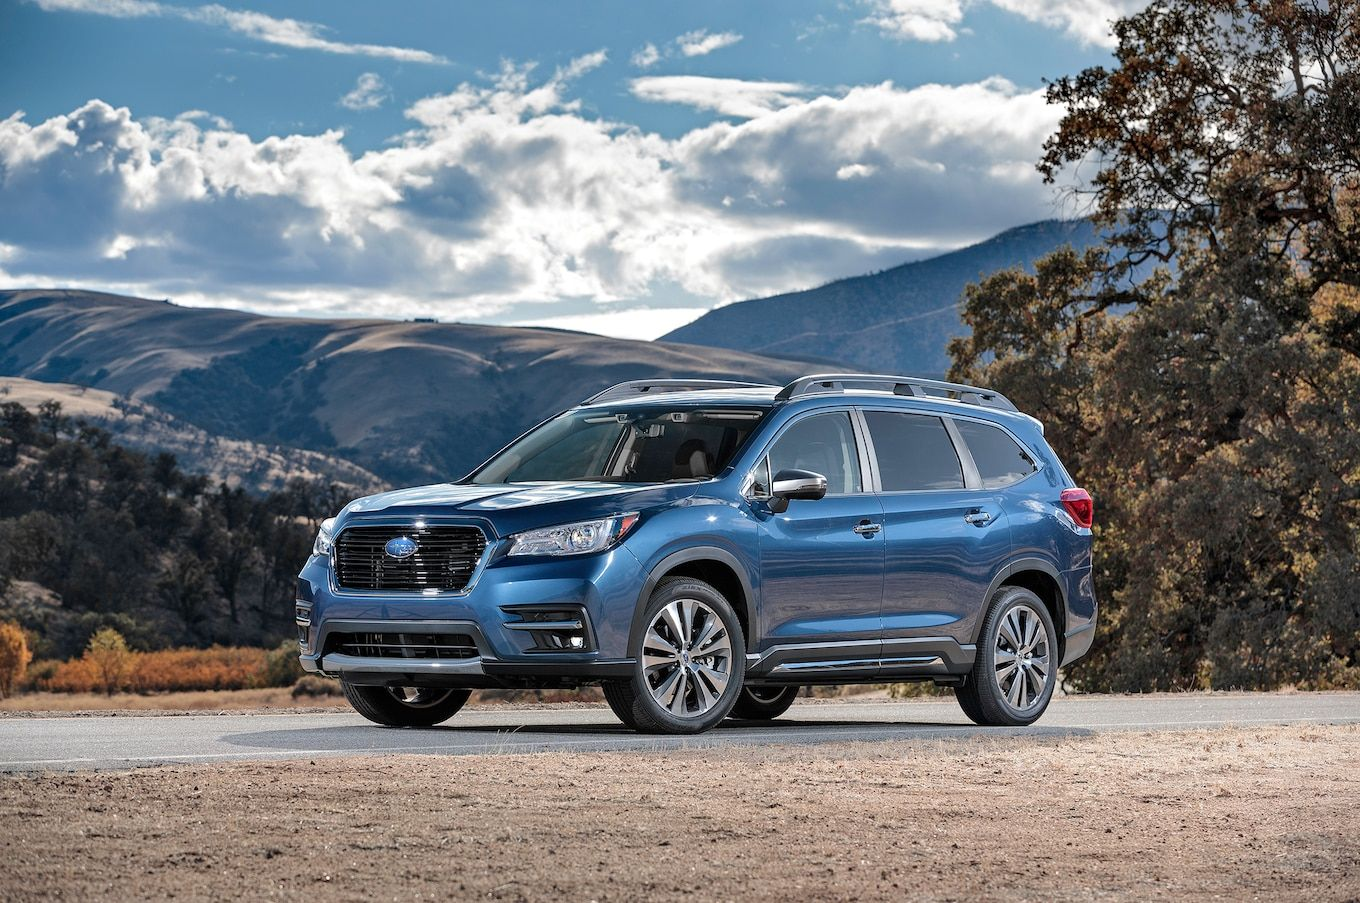 Best images of Safari Car Subaru Ascent 2019. Subaru